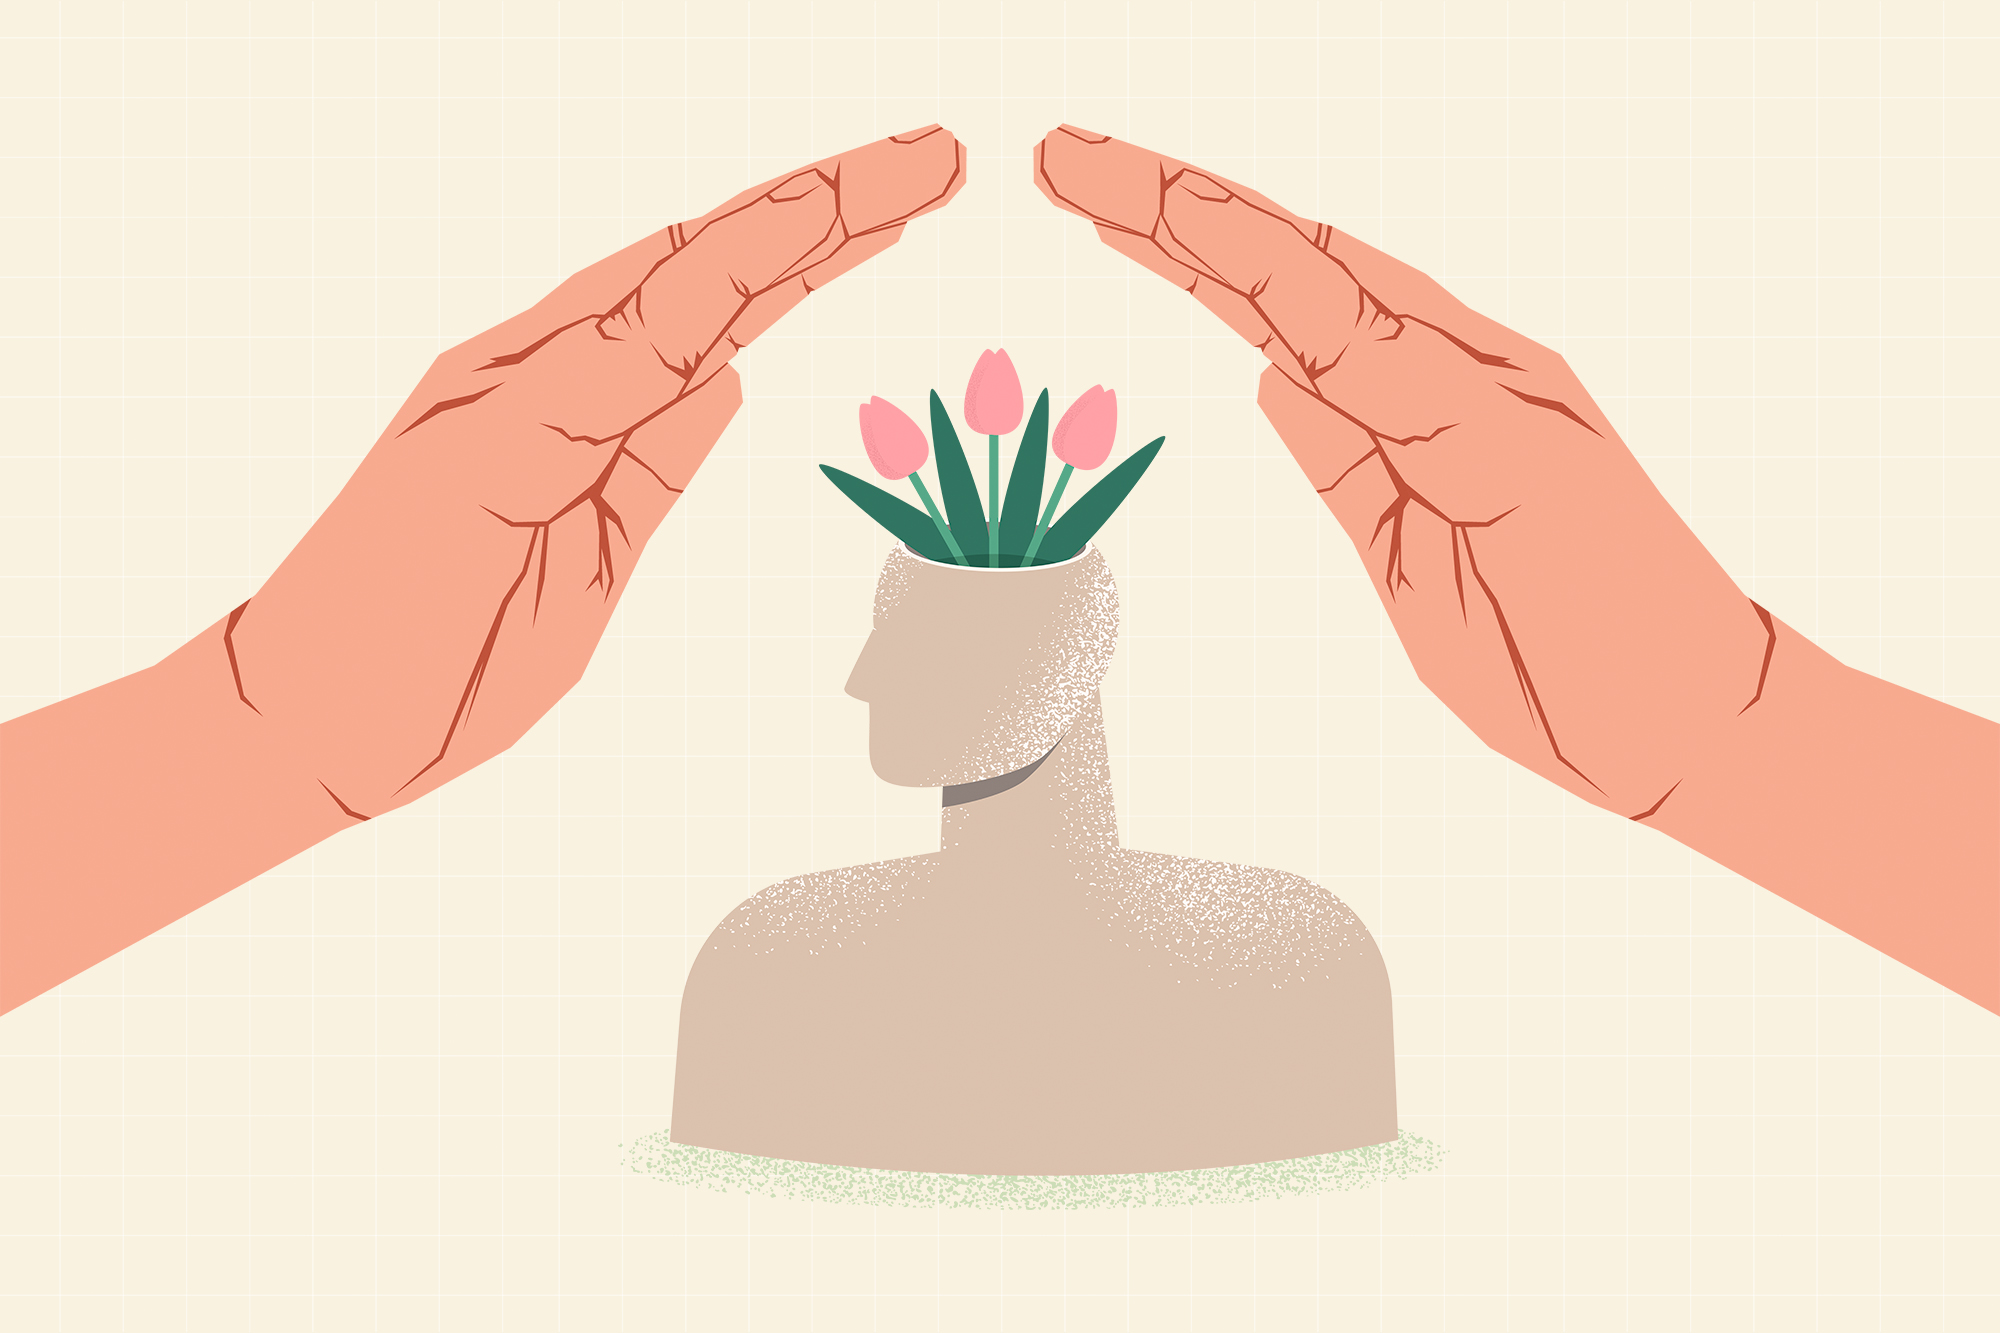 hands hovering over and protecting a simple illustration of a person with flowers growing out of their head